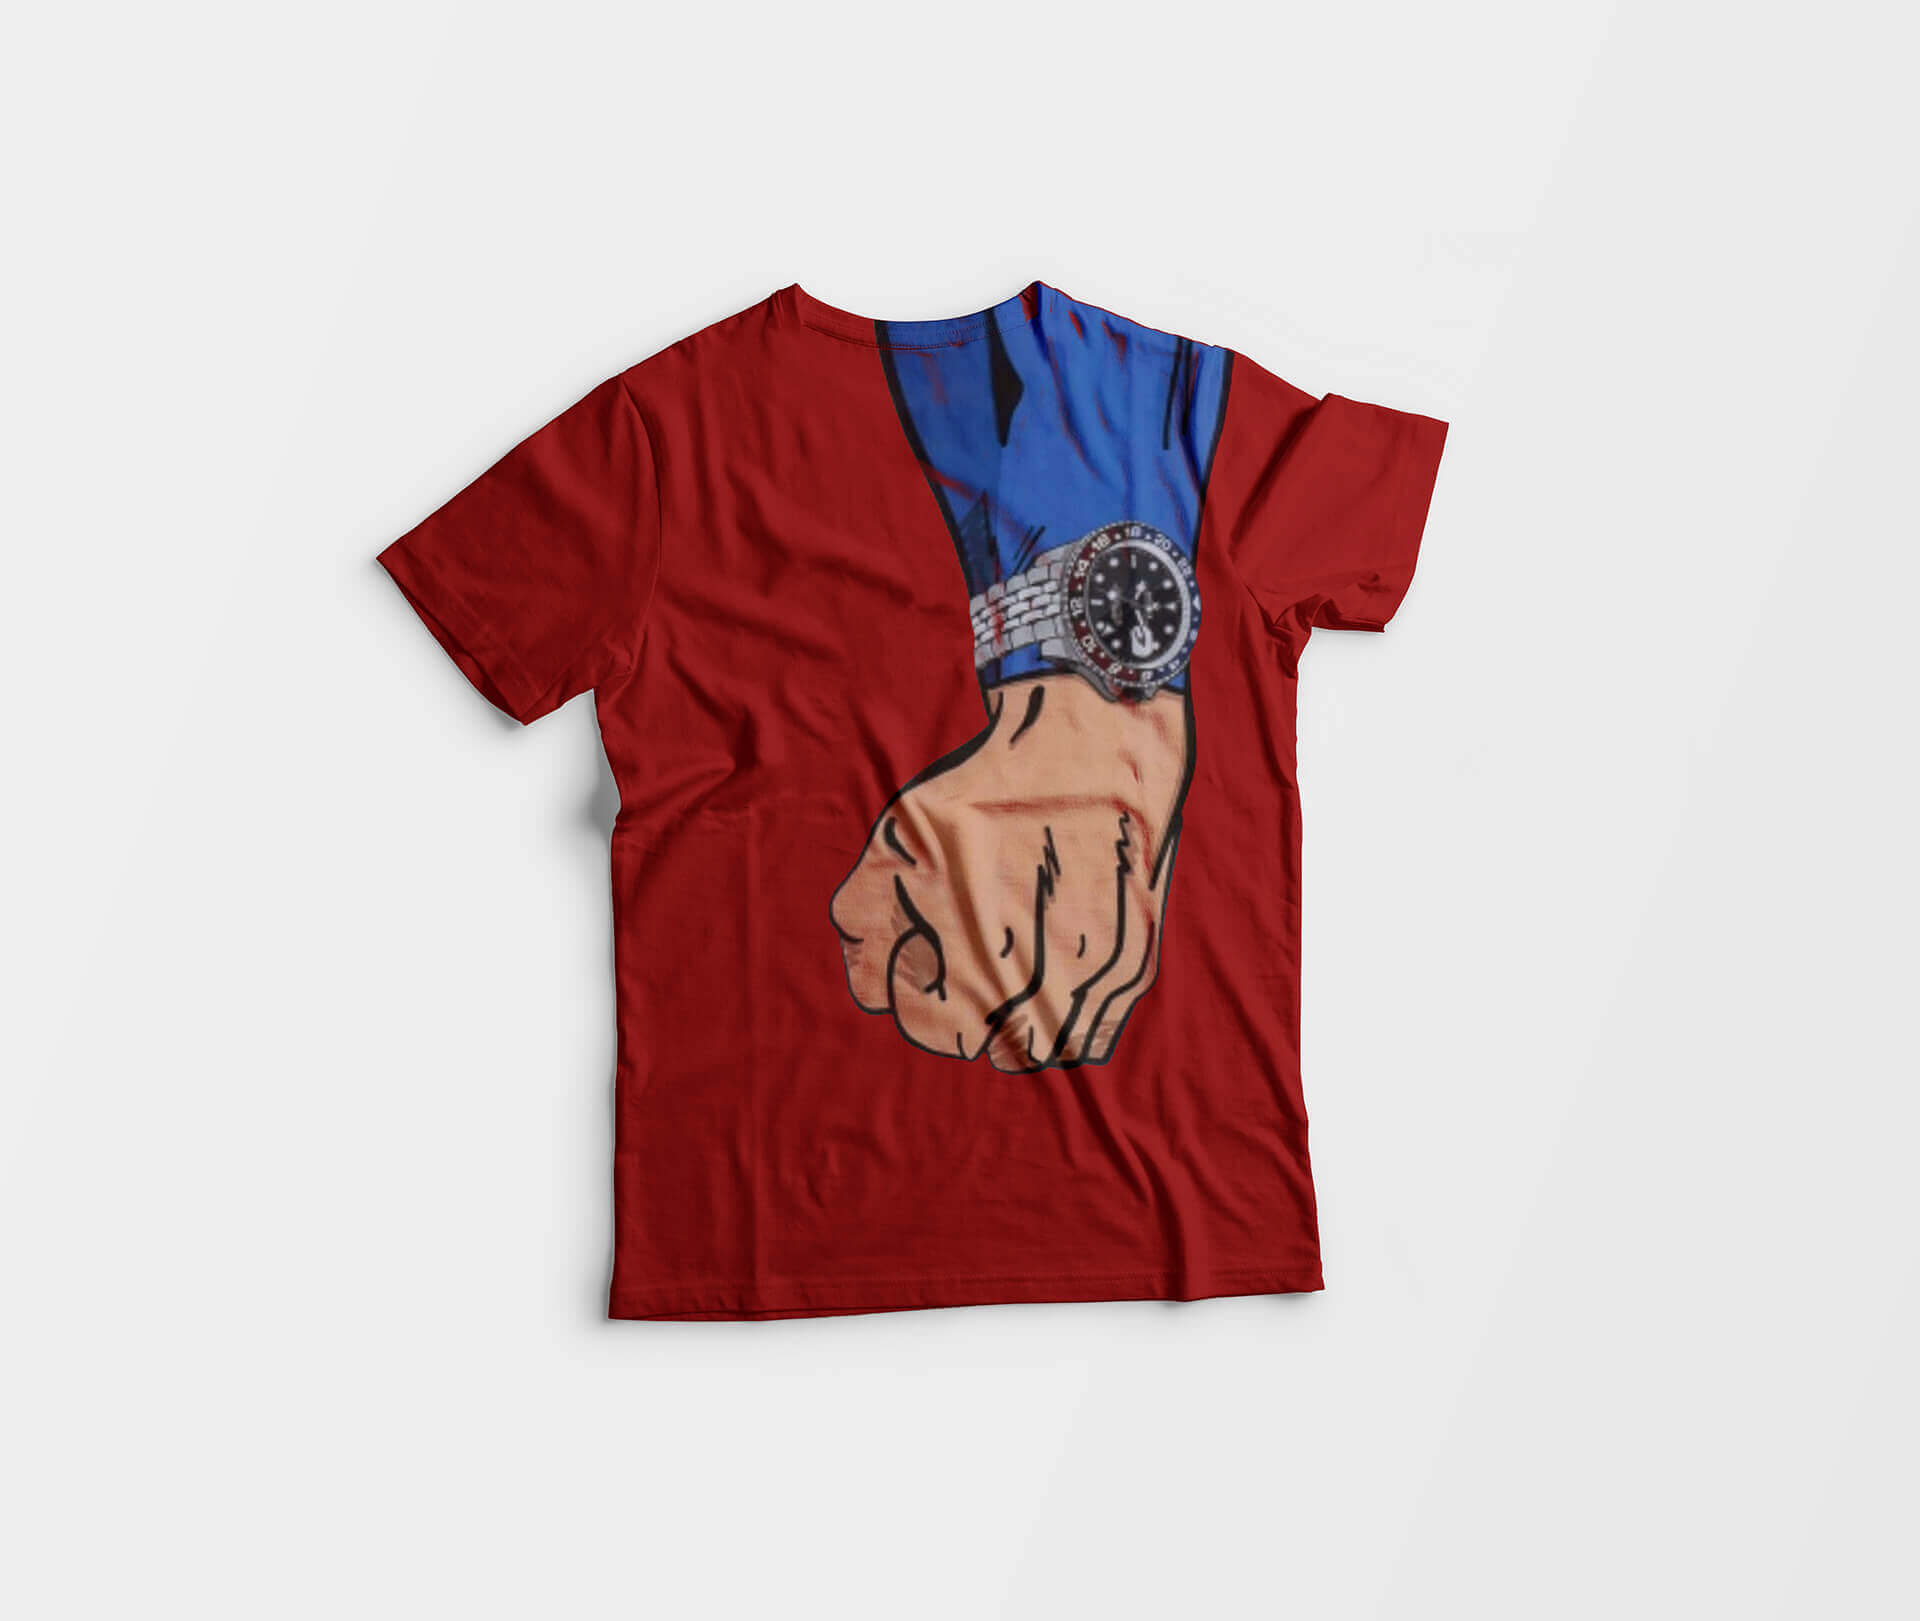 octa-portfolio-grafica-07---Herologery---Mockup-T-Shirt-Superman-